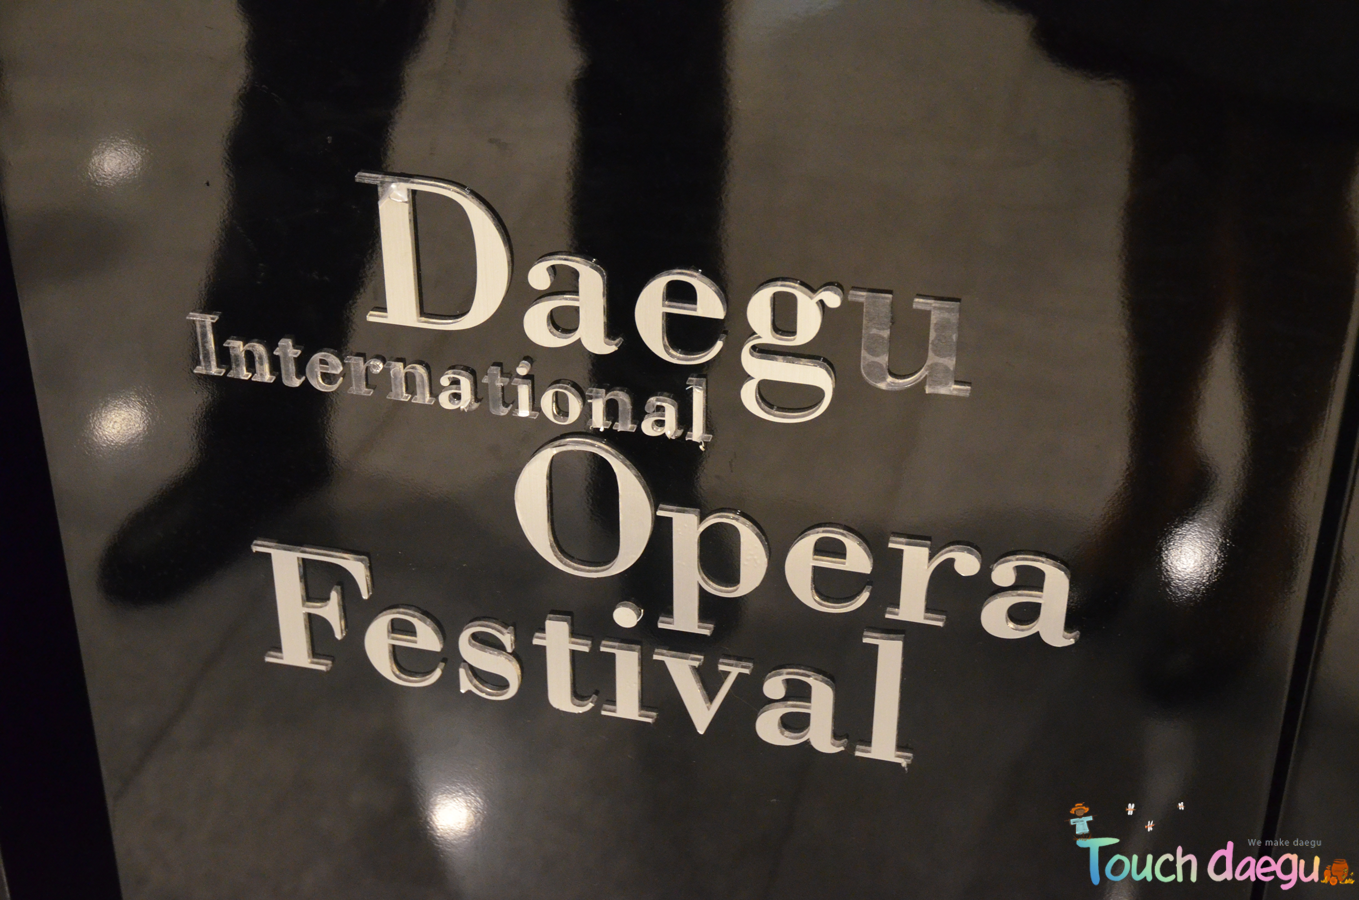 Daegu International Opera Festival is on going at Daegu opera house